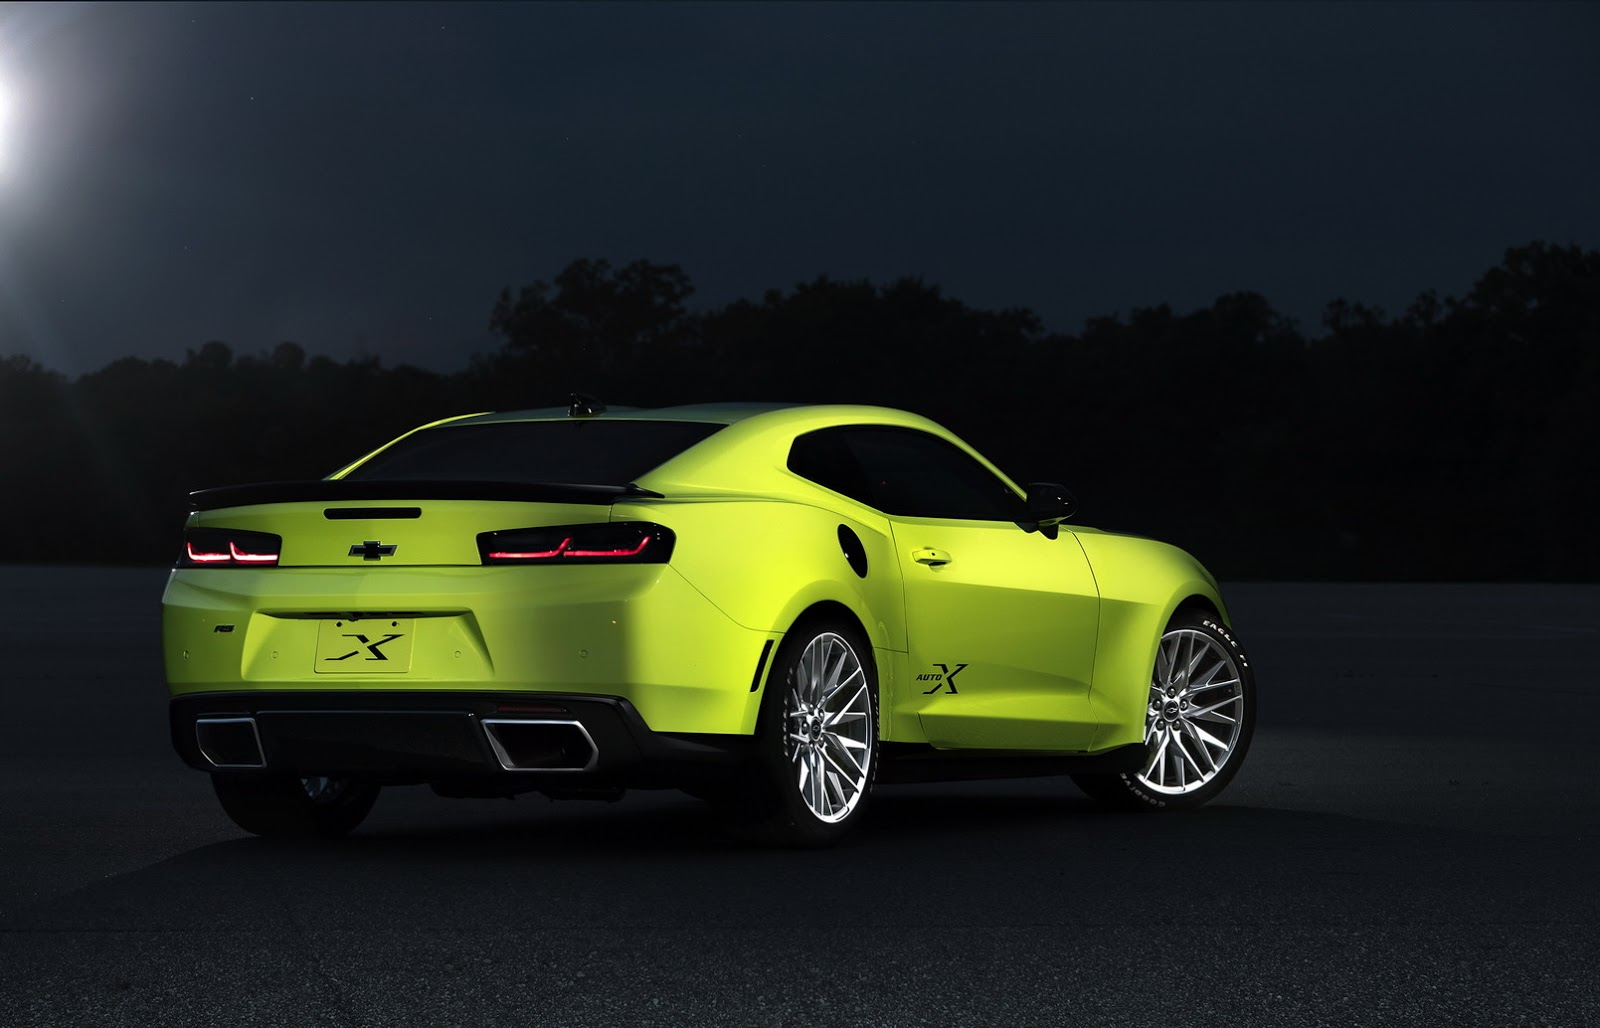 New Camaro Turbo AutoX And SS Slammer Concepts Join Chevy ...